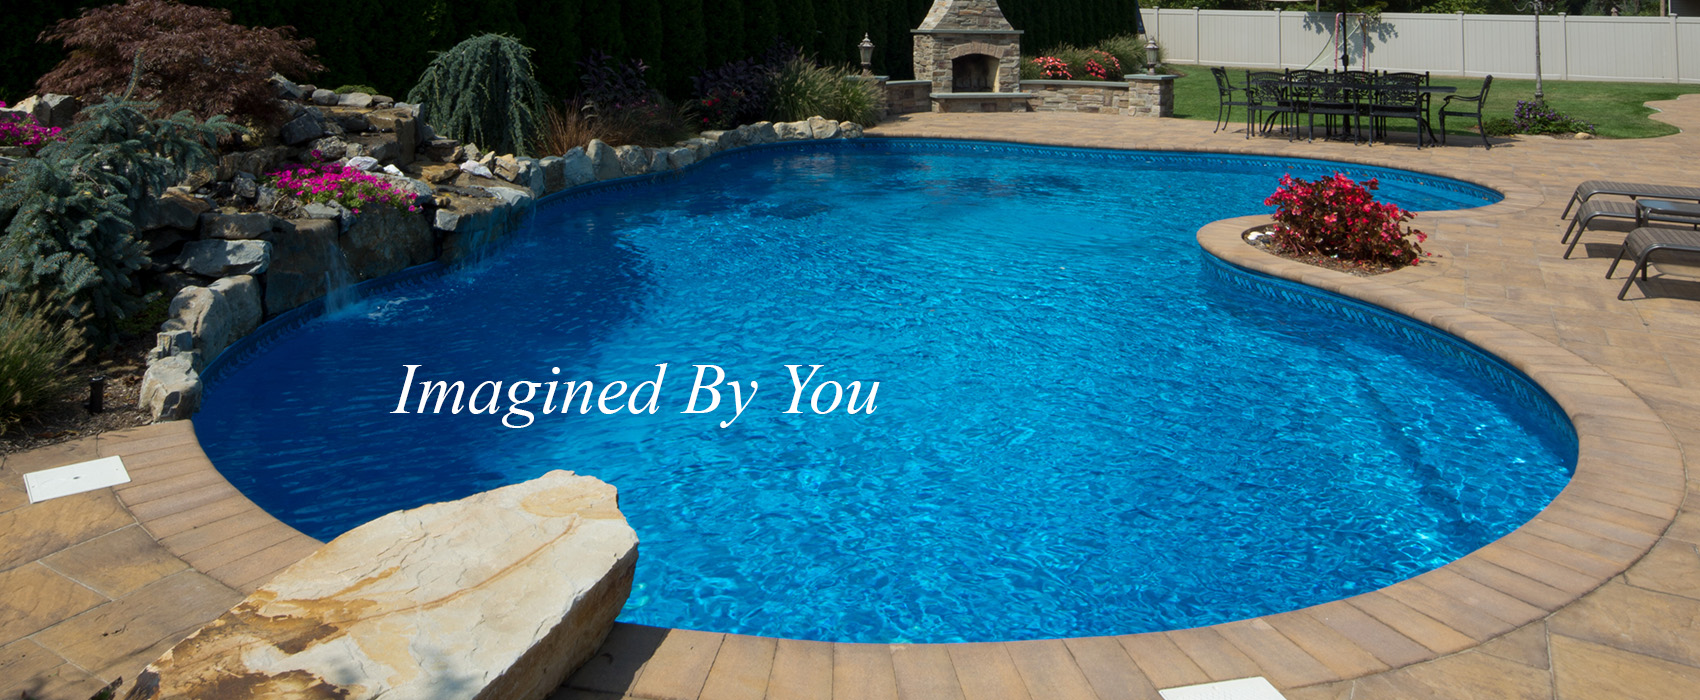 mcewen, mcewen industries, swimming pool manufacturer, inground pool liners, pool liners, pool covers, Spa, Spas, Hot Tub, Hot Tubs, Swim Spa, Swim Spas, Highland Spa, Highland Spas, large family spas, relaxing spas